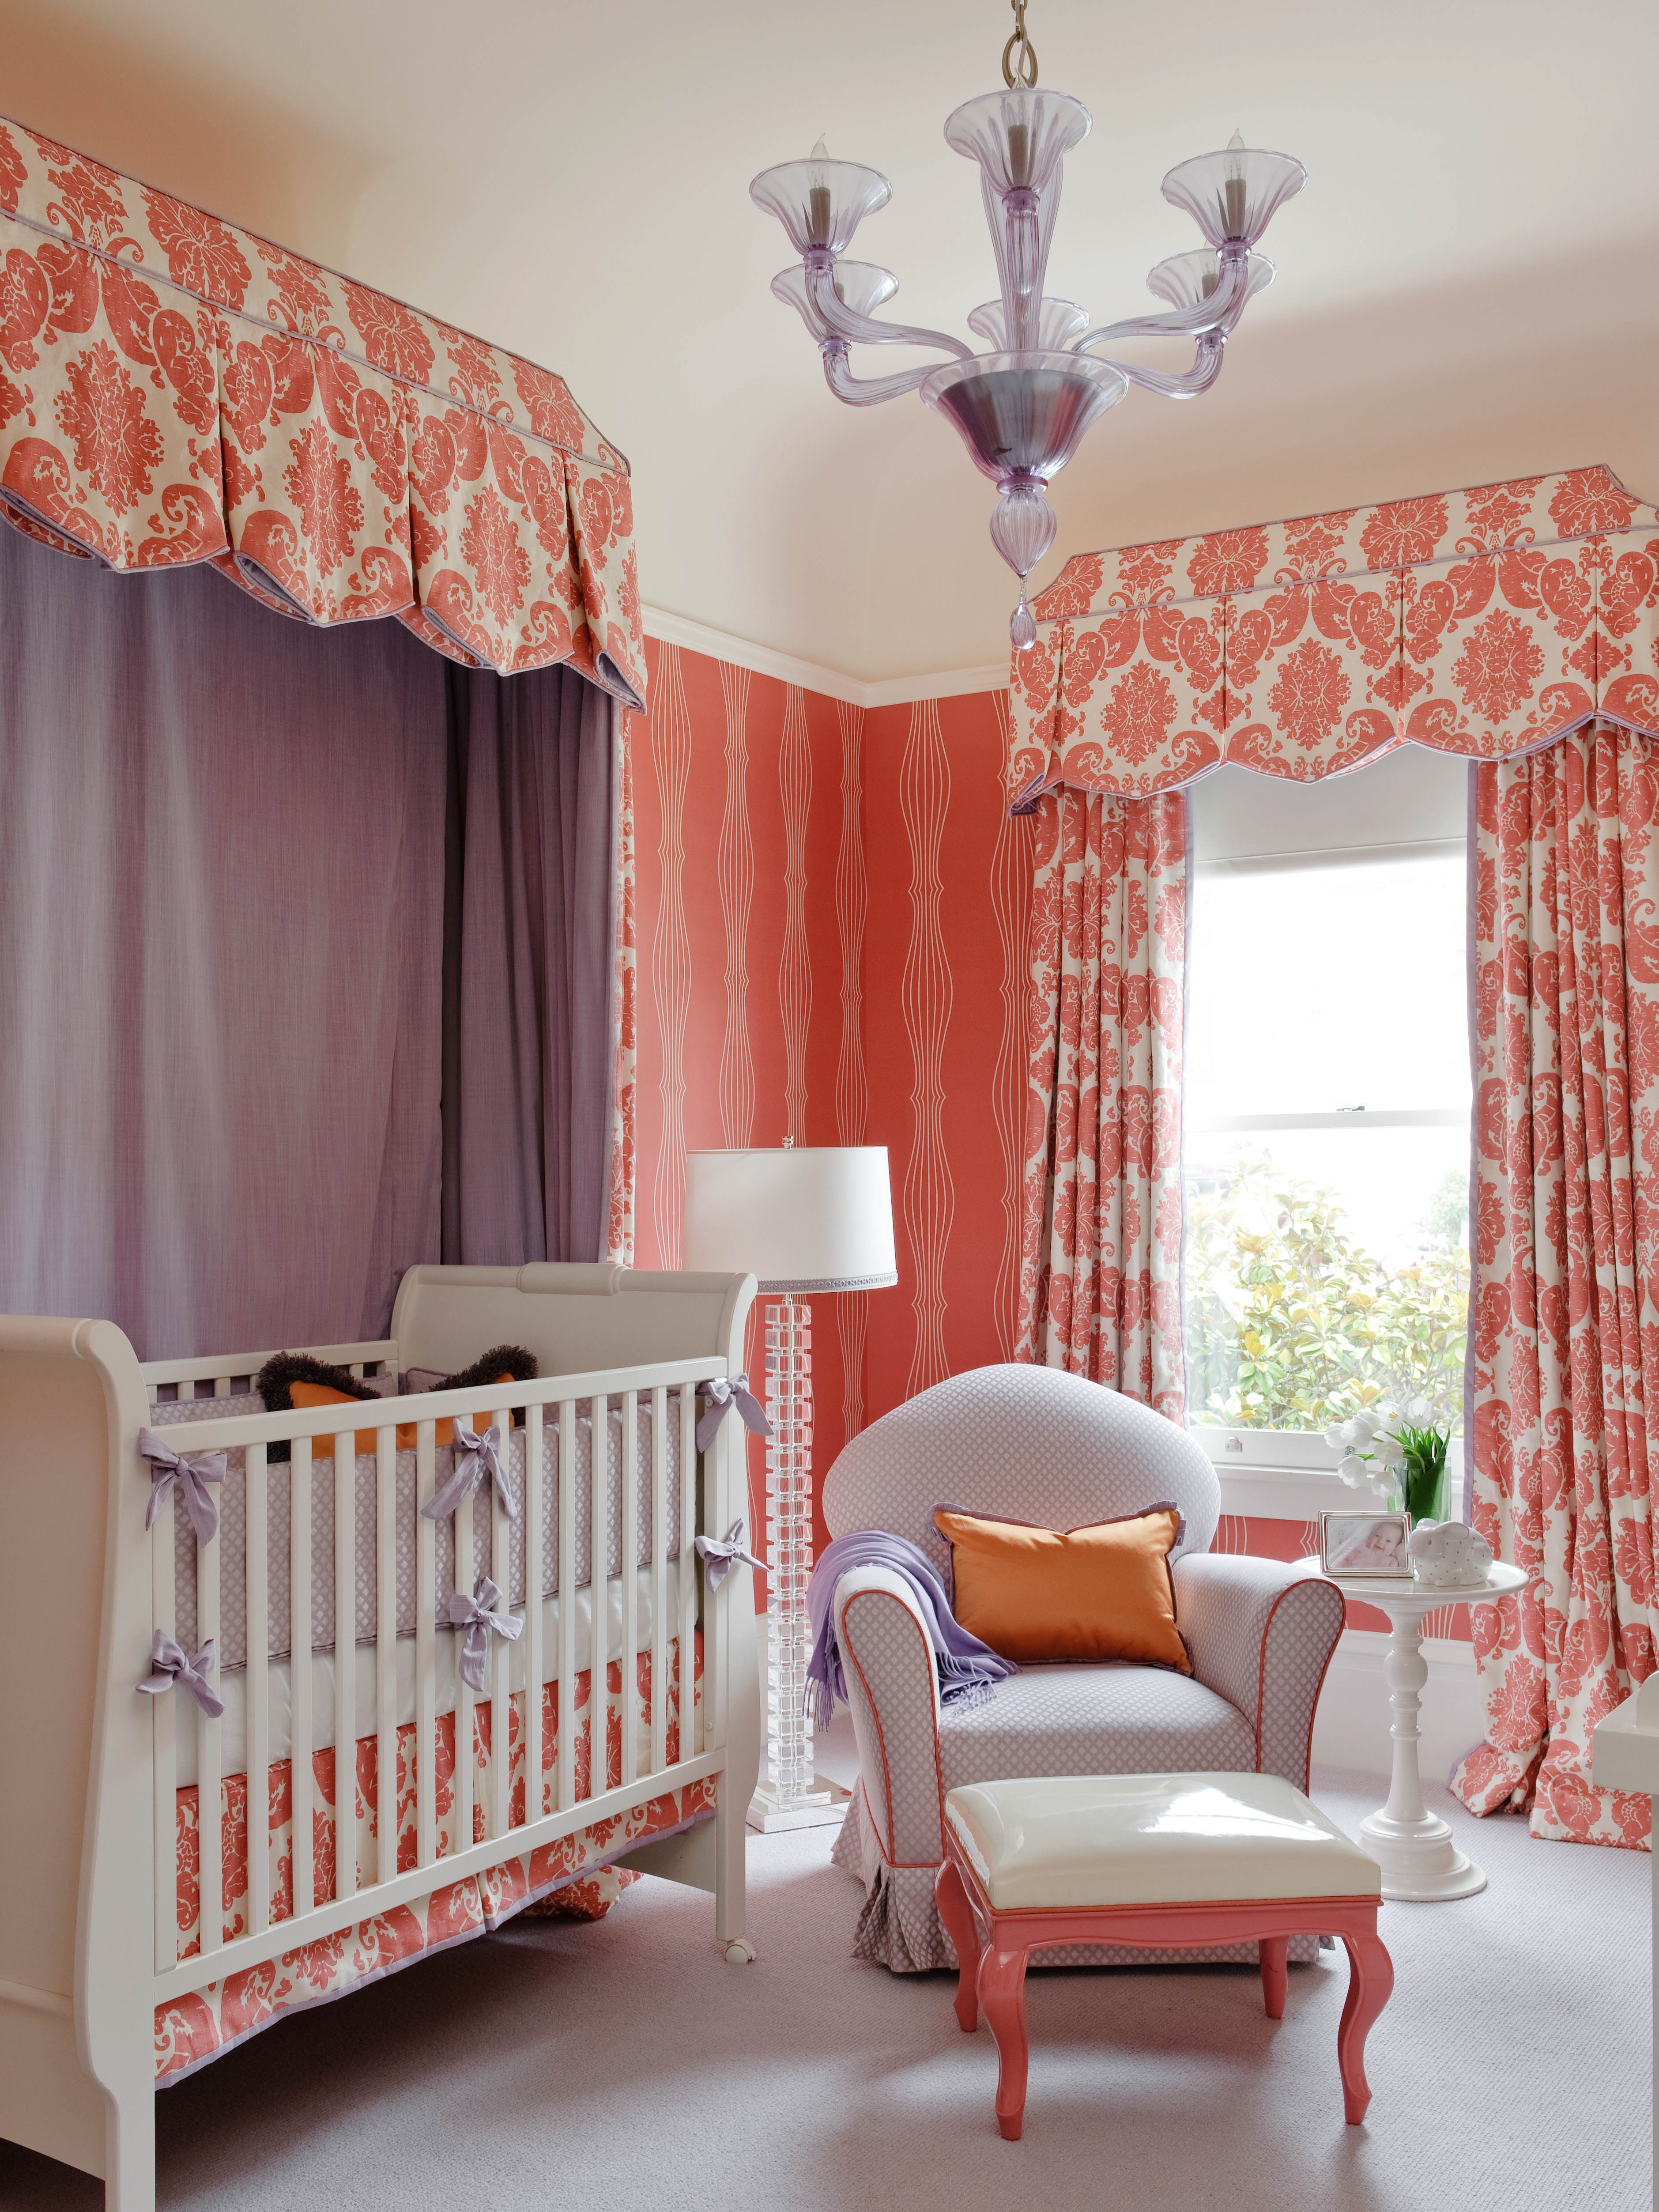 Cozy Baby Room Decor In Classic Style (Image 11 of 33)